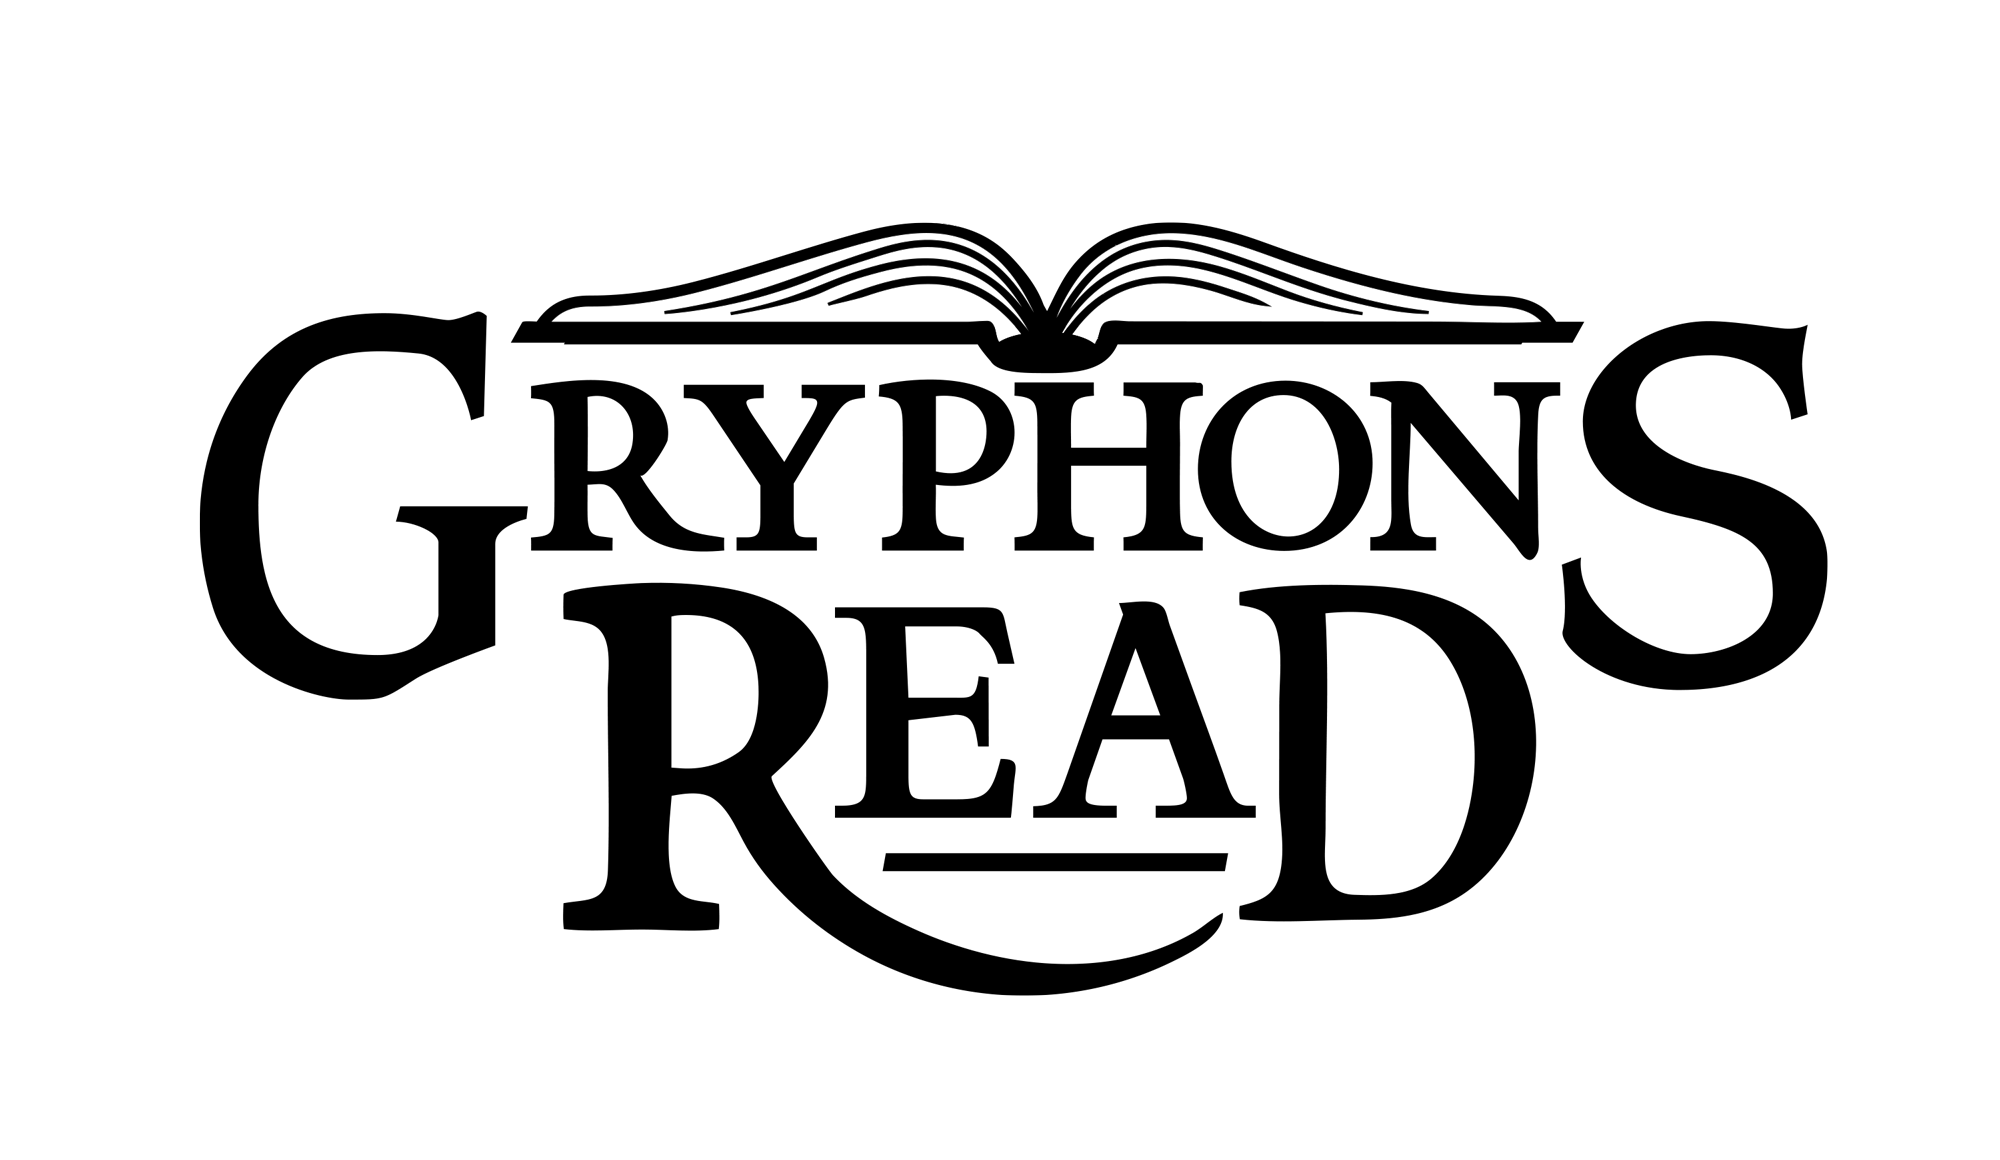 Need a Good Book this Summer? Gryphons Read 'Son of a